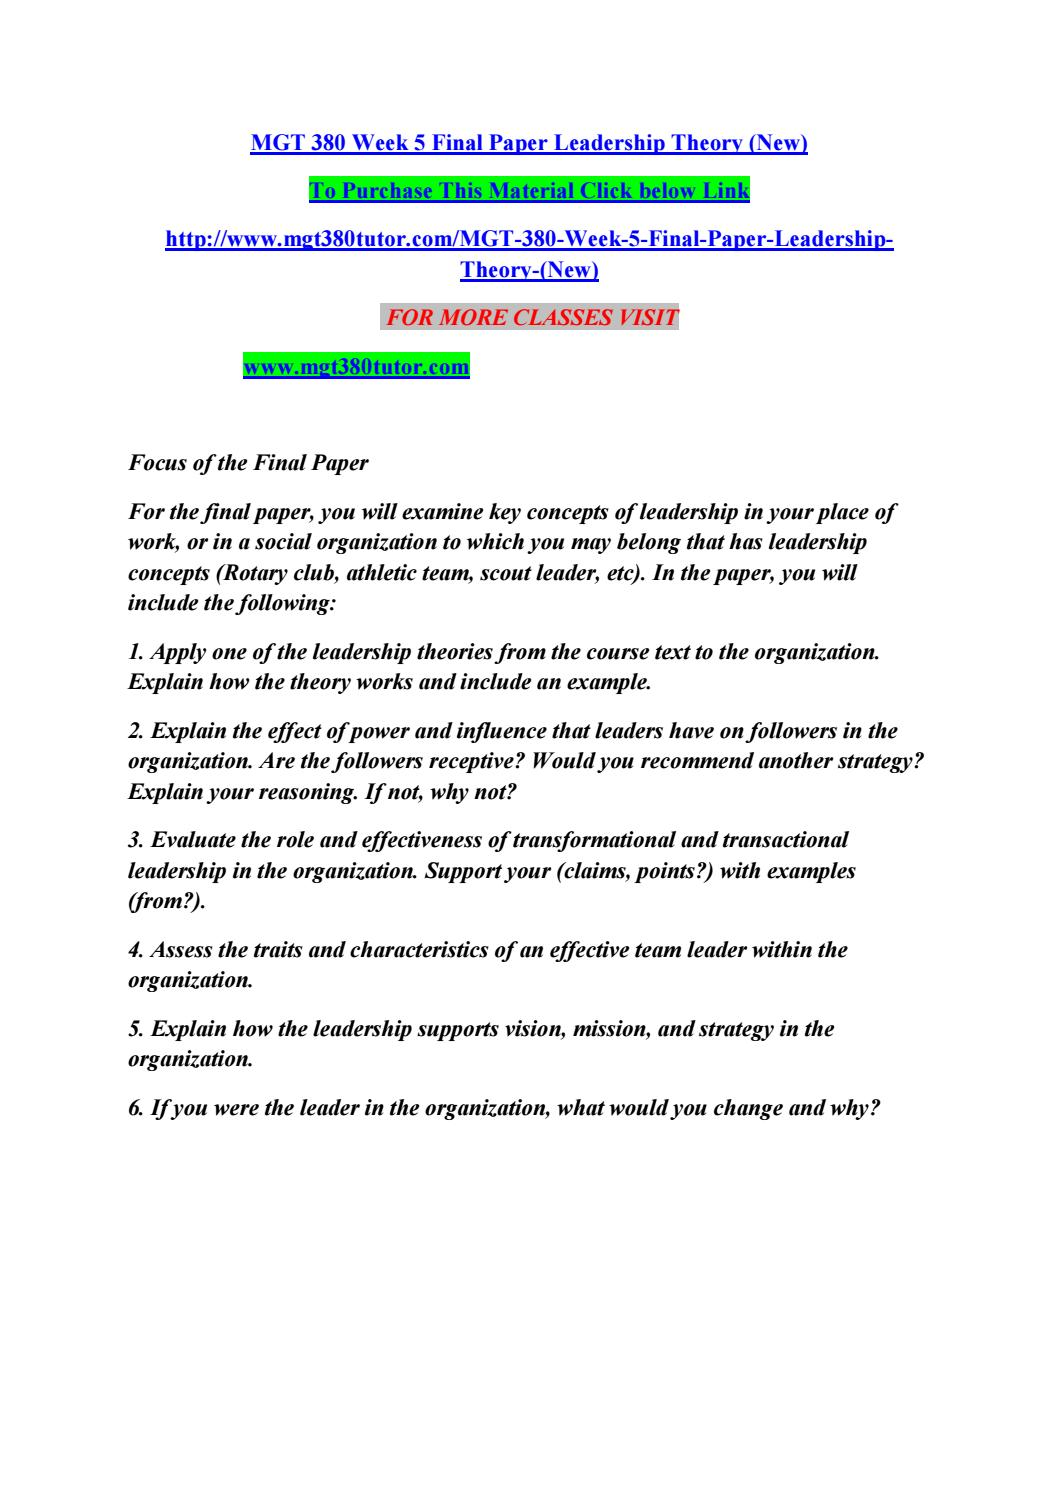 Mgt 380 week 5 final paper leadership theory (new) by singht